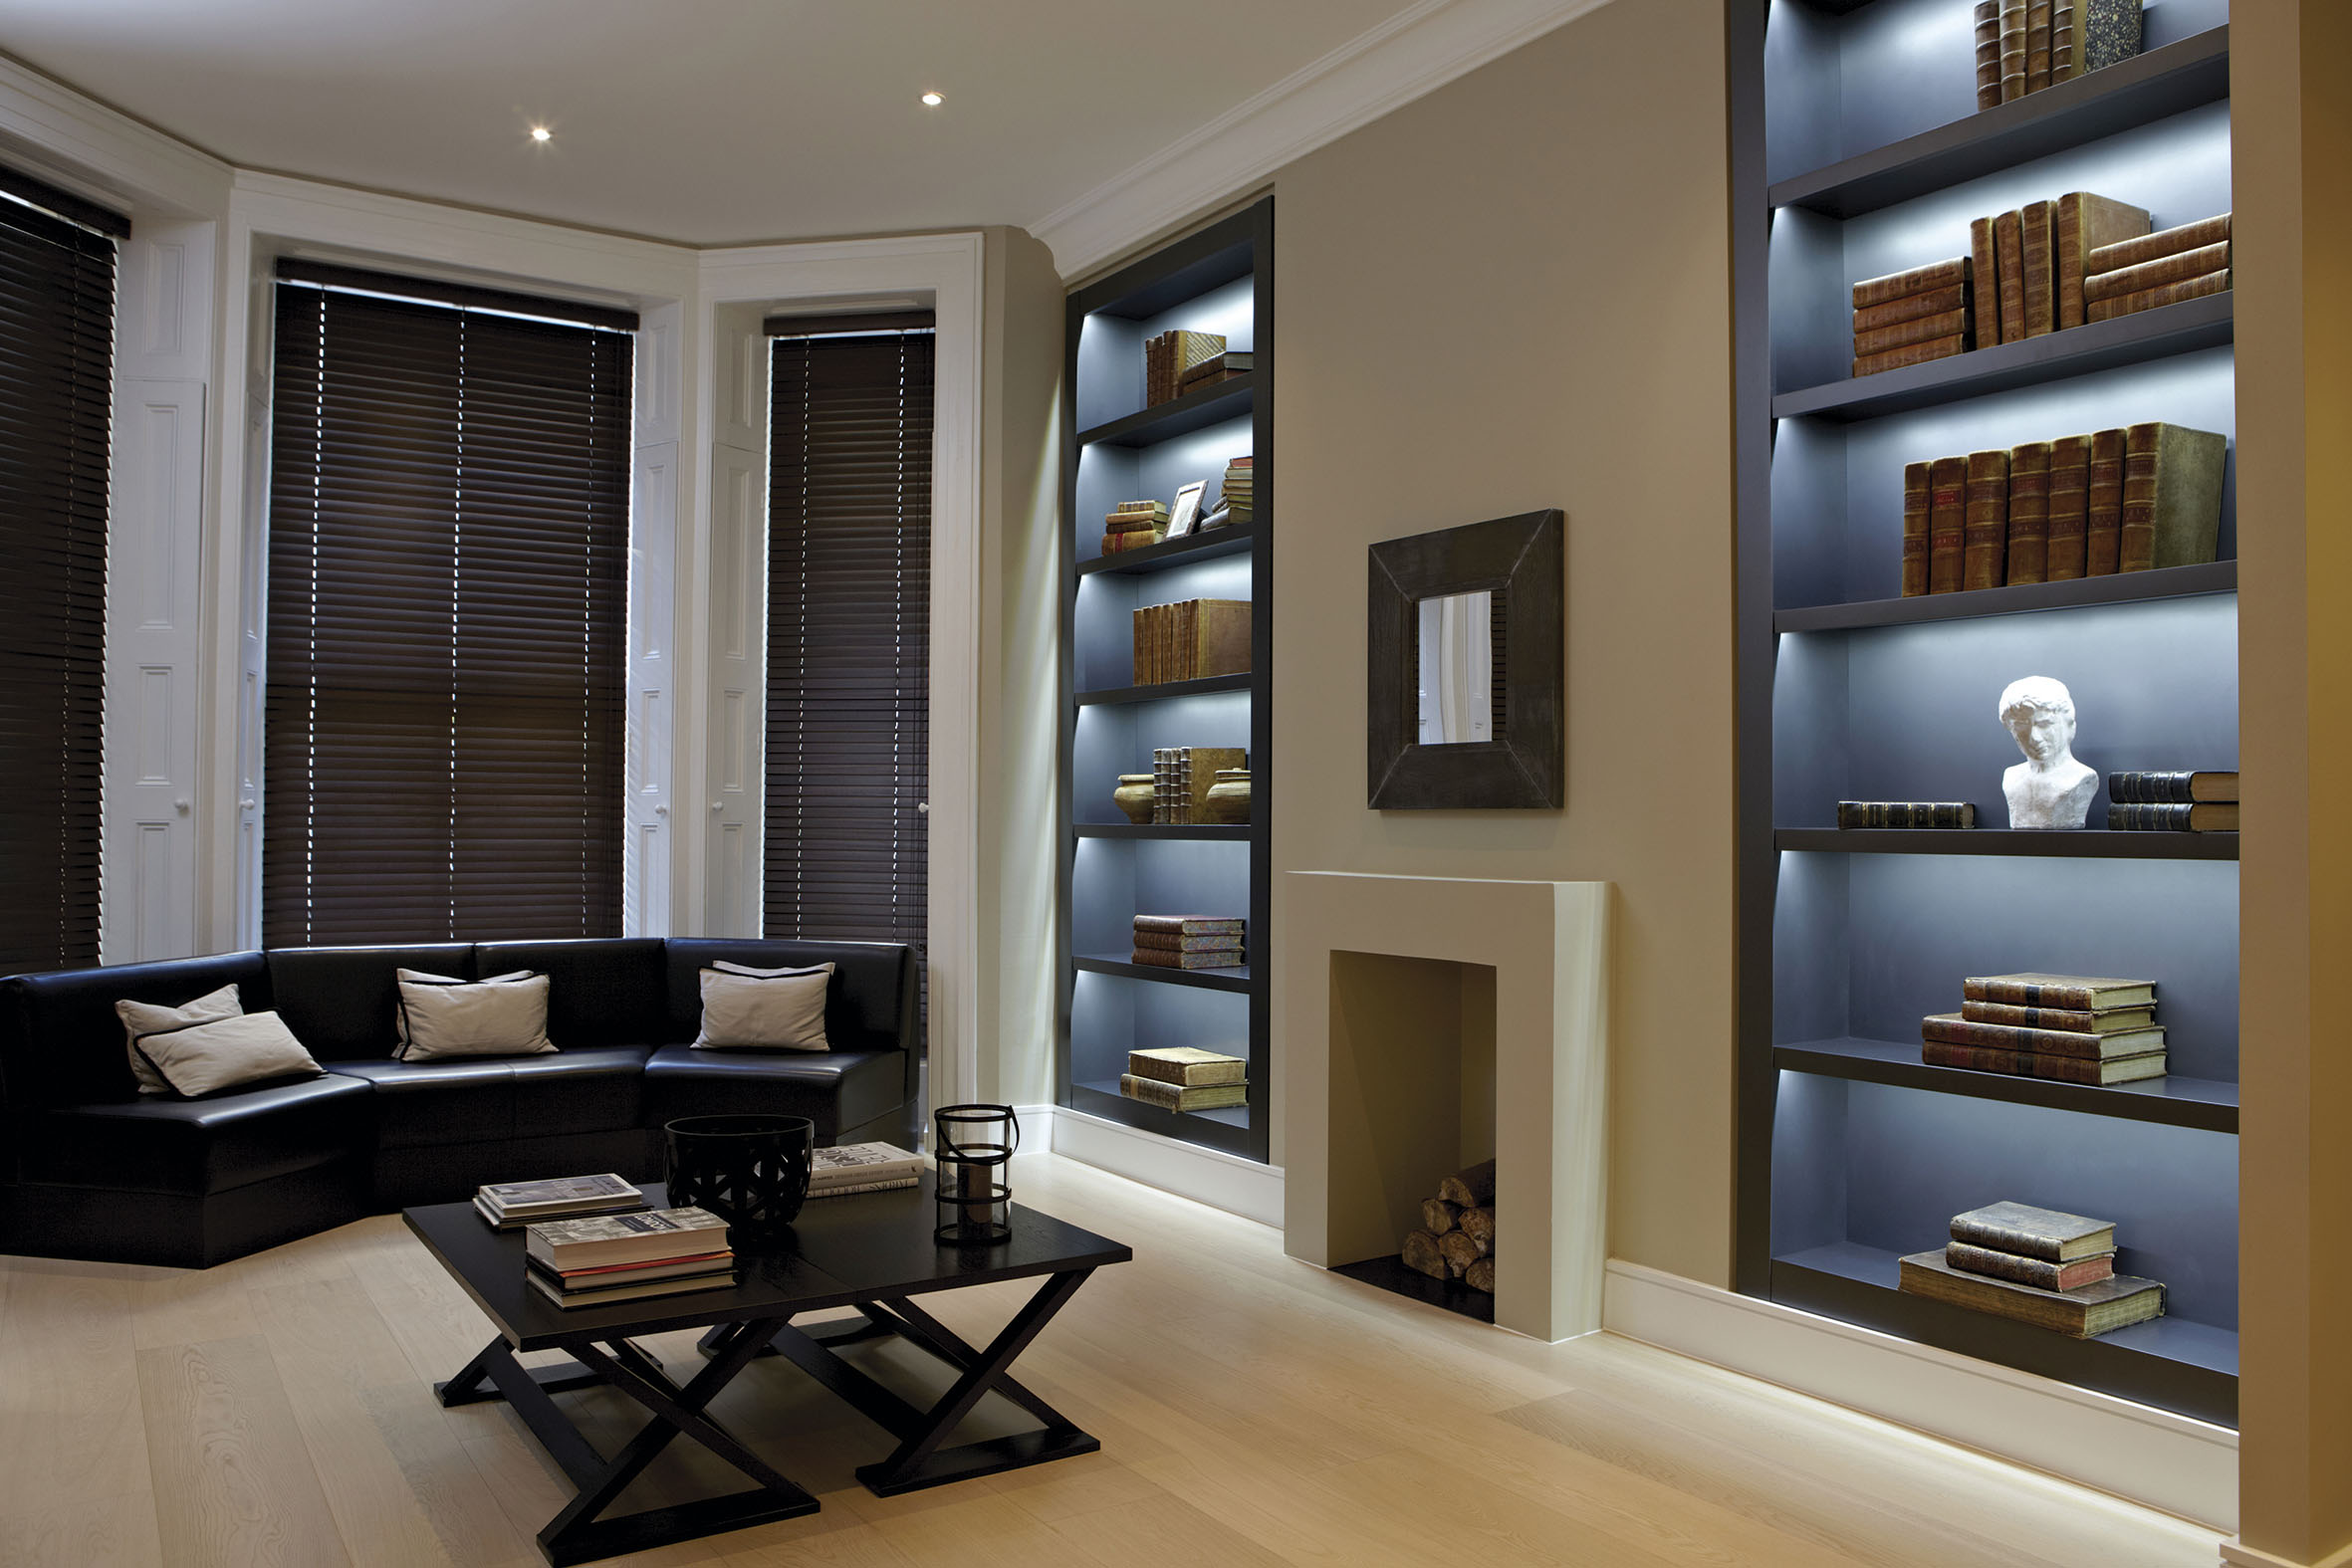 Why To Install Movable Walls In Your House And Working Area?